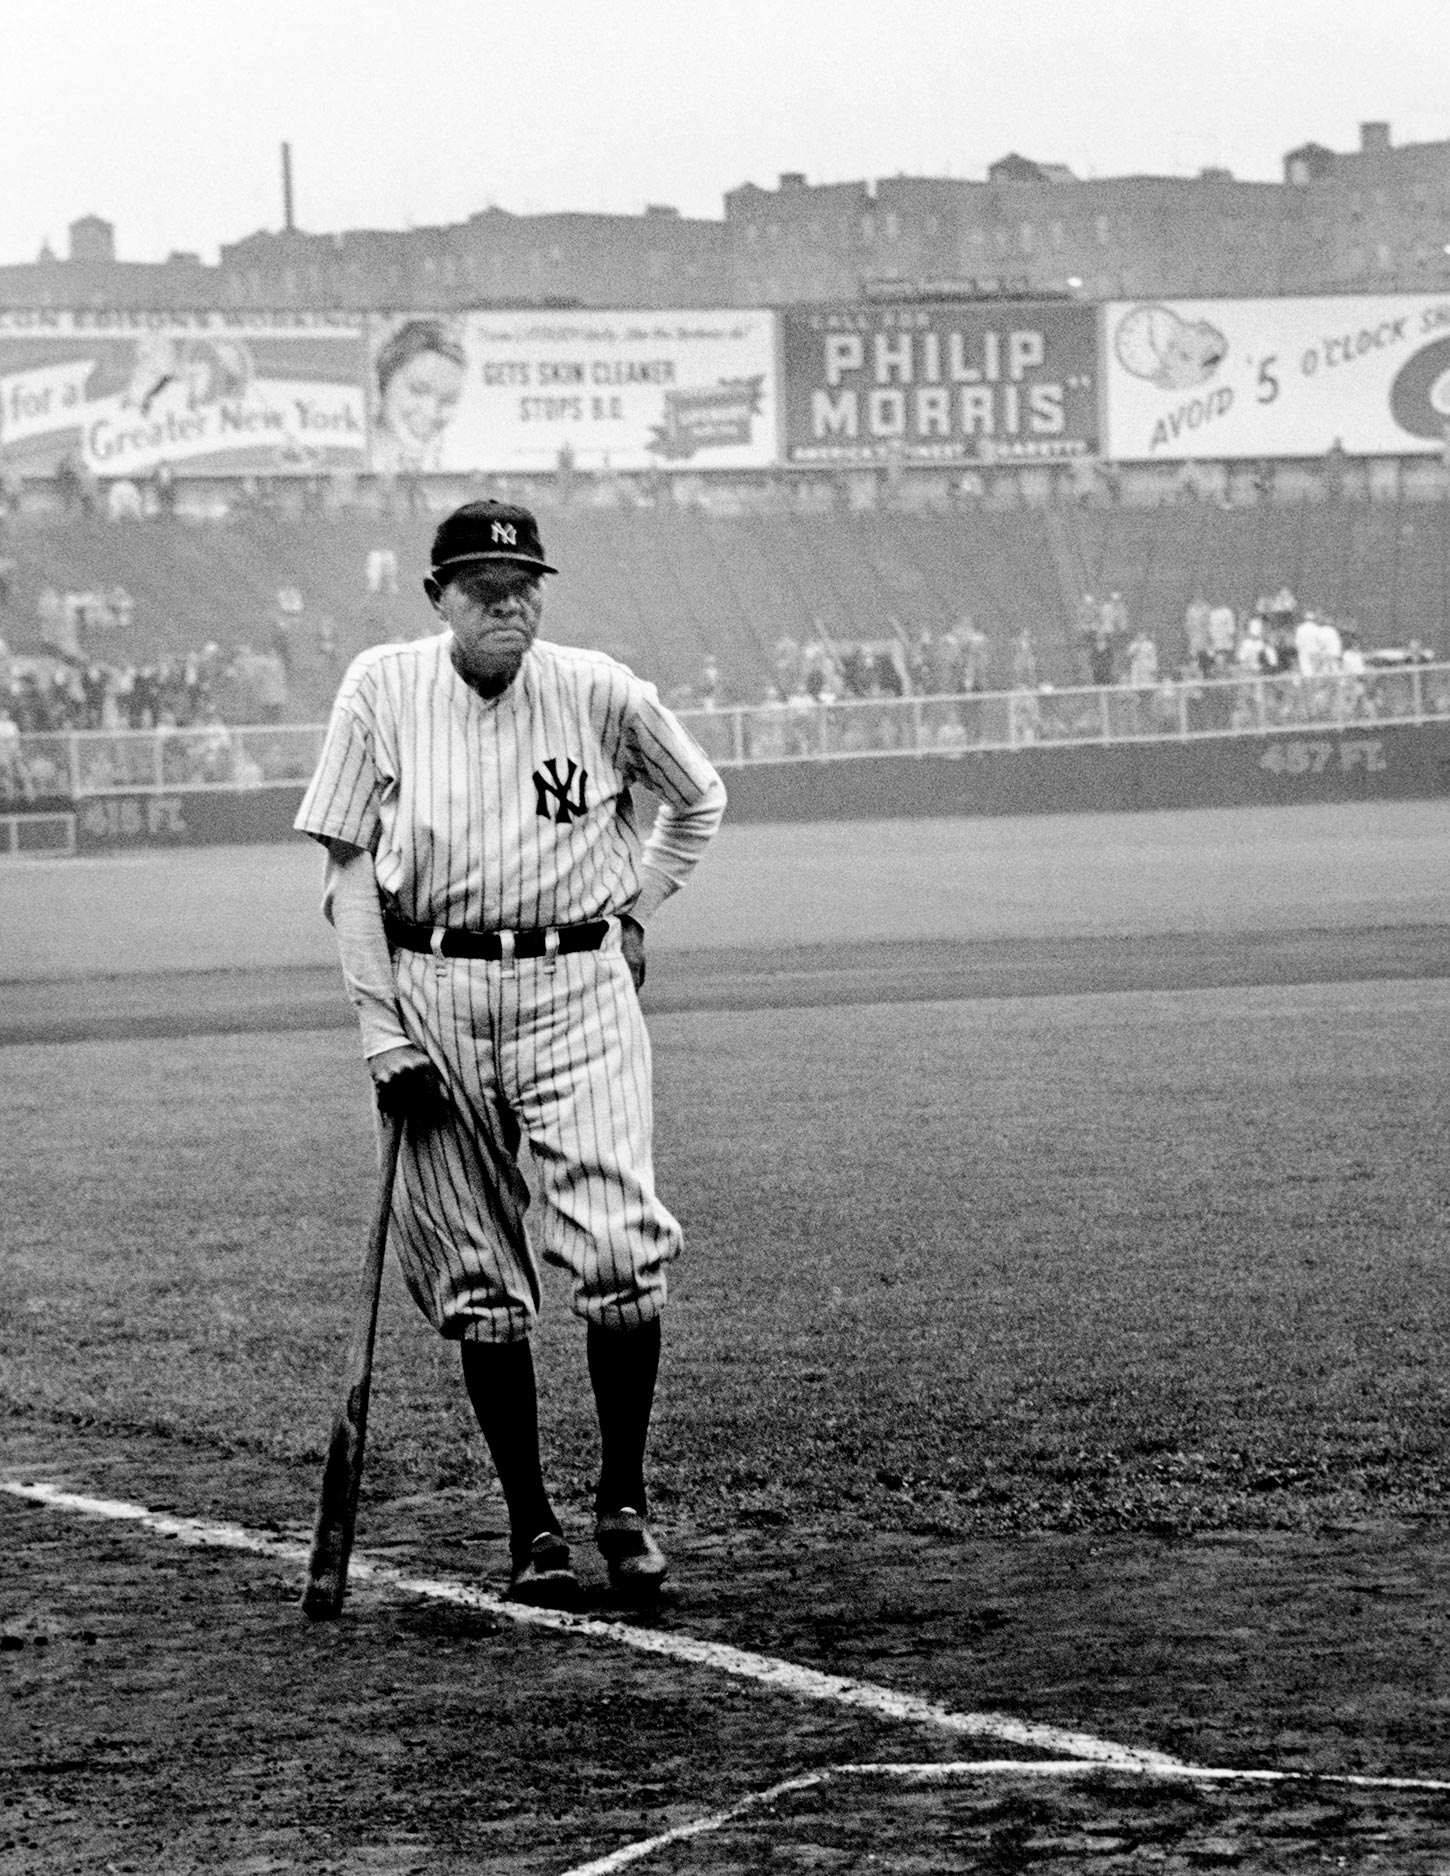 Babe Ruth. New York City, USA. June 13, 1948.